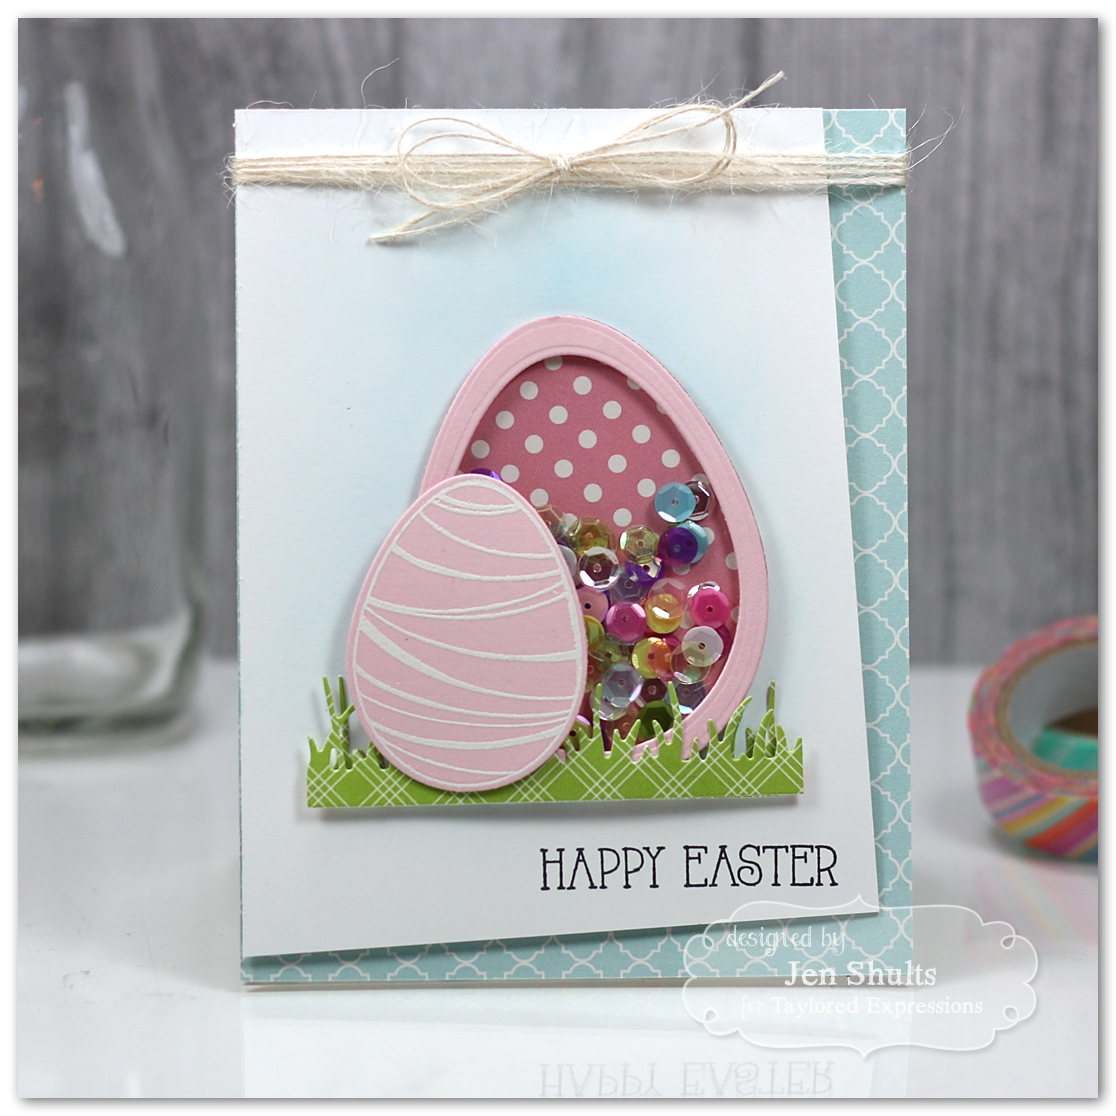 Share Joy Challenge 27: Happy Easter!!